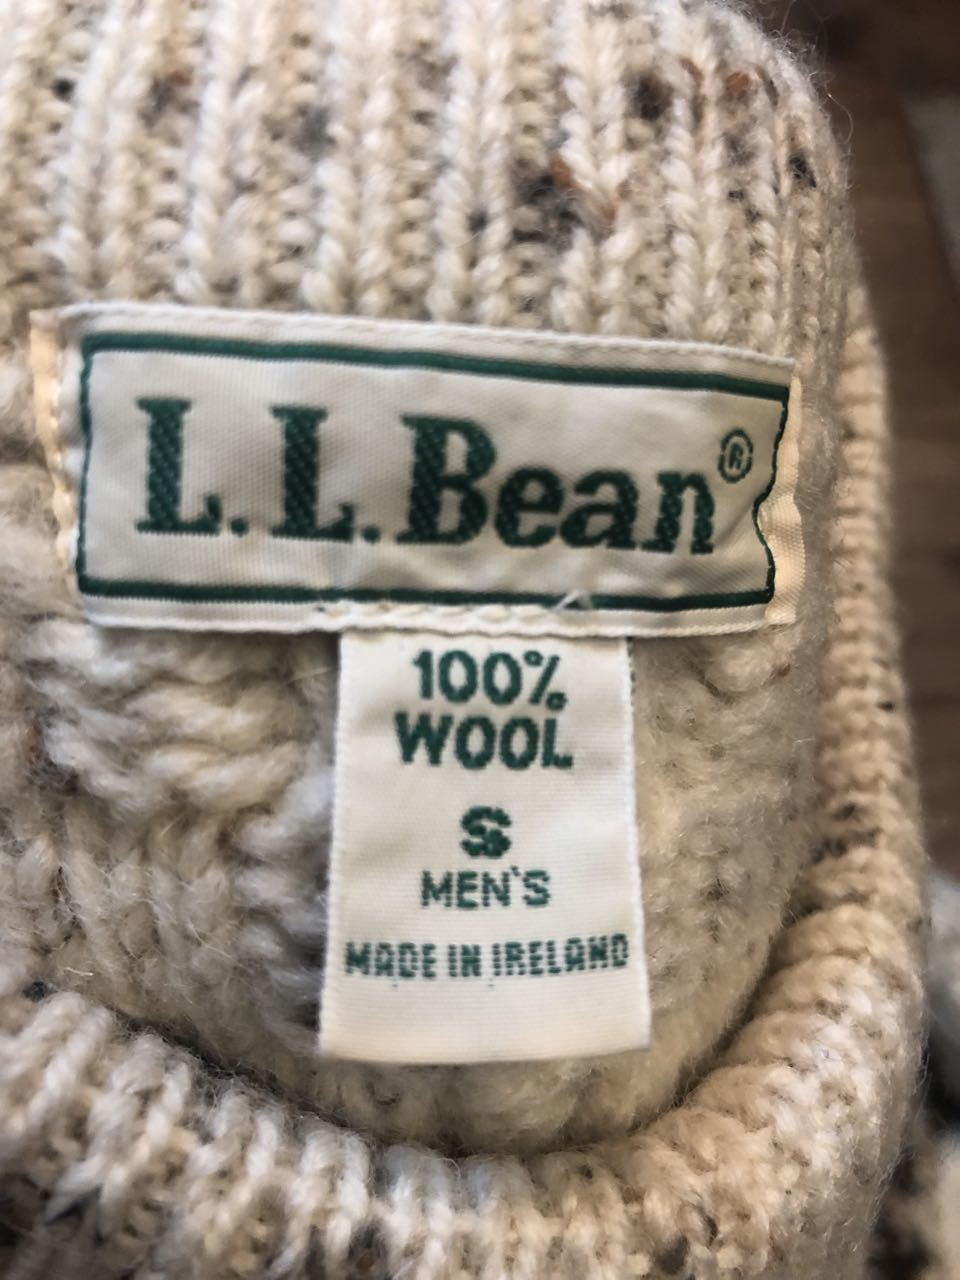 11月16日(土)入荷!MADE IN IRELAND L.L Bean all wool sweater!!_c0144020_13574445.jpg